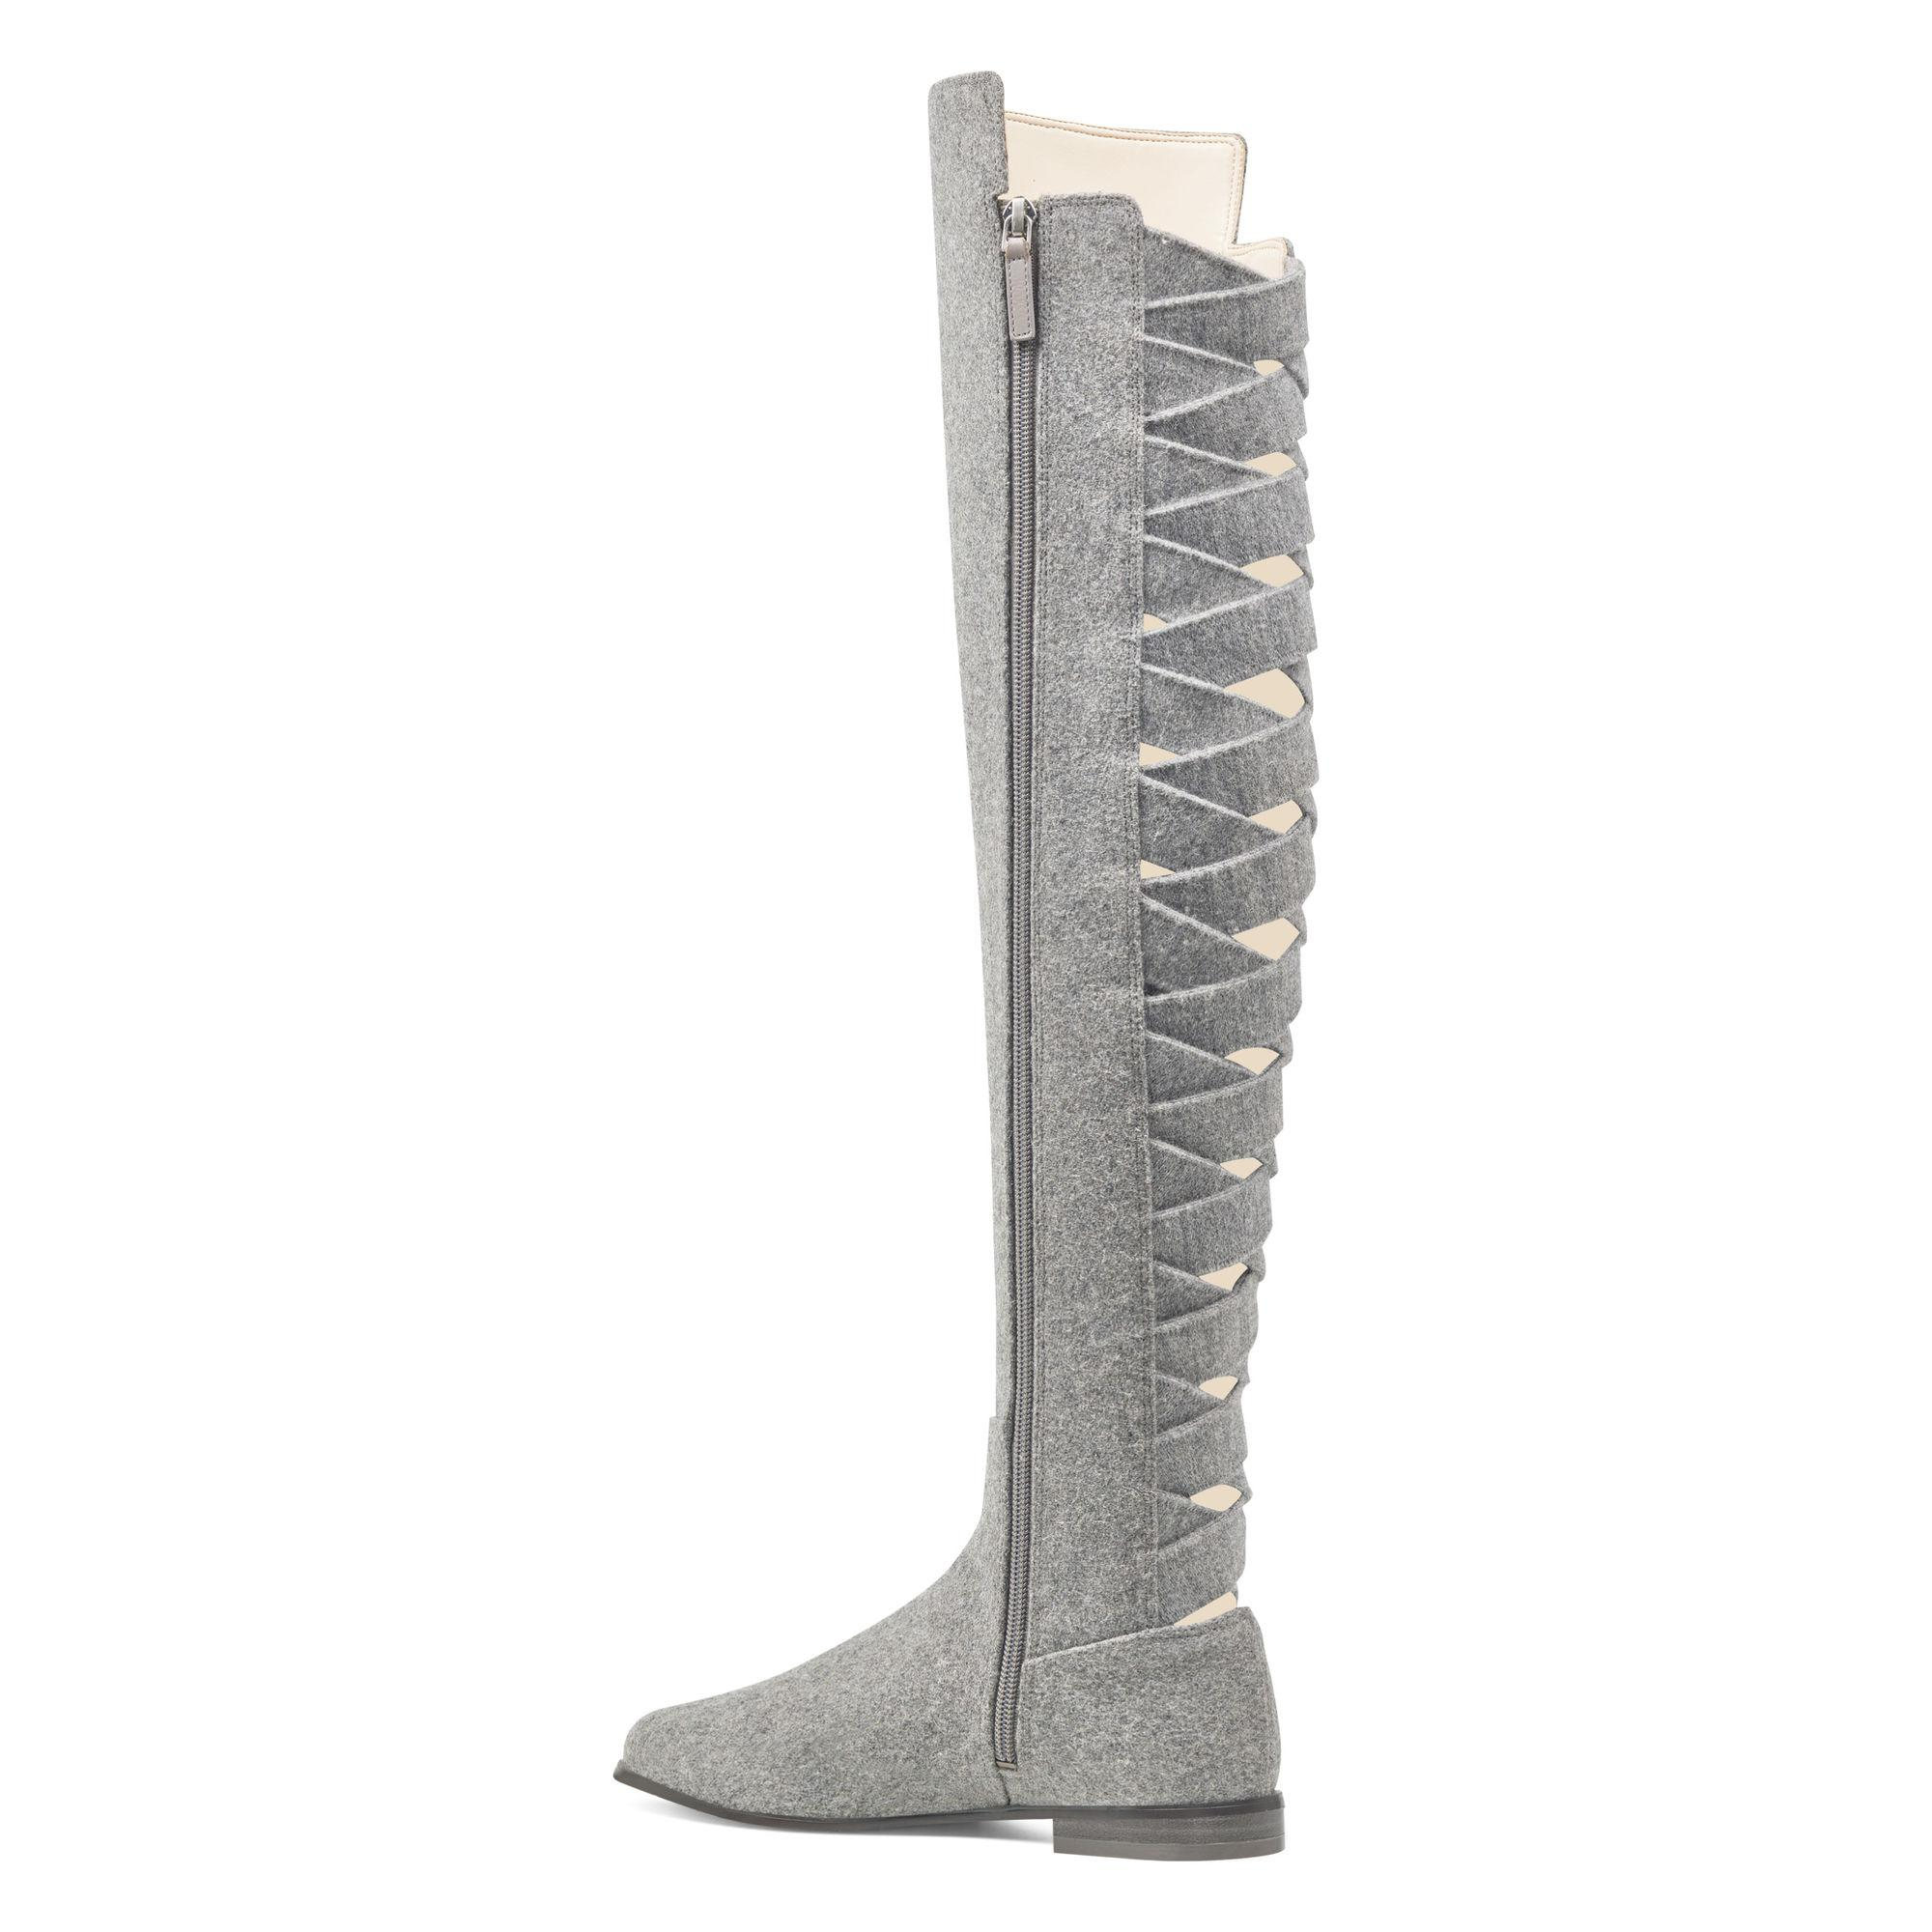 5c9eacc0f84 Lyst - Nine West Eltynn Over The Knee Boots in Gray